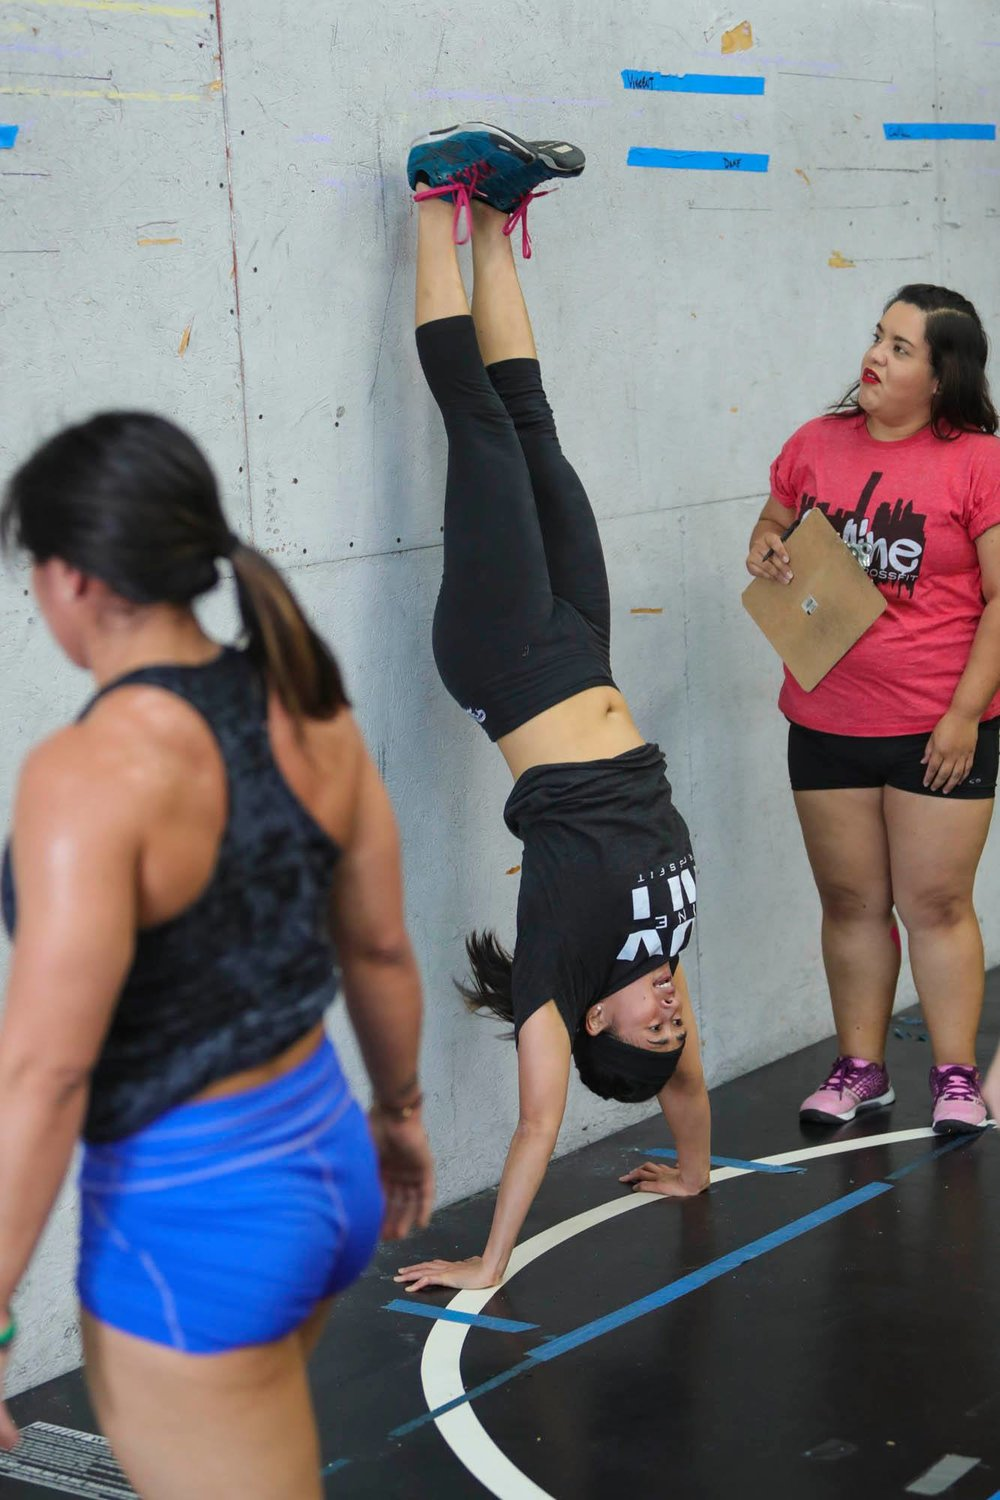 Coach Terri showing a good lockout in the handstand pushup.